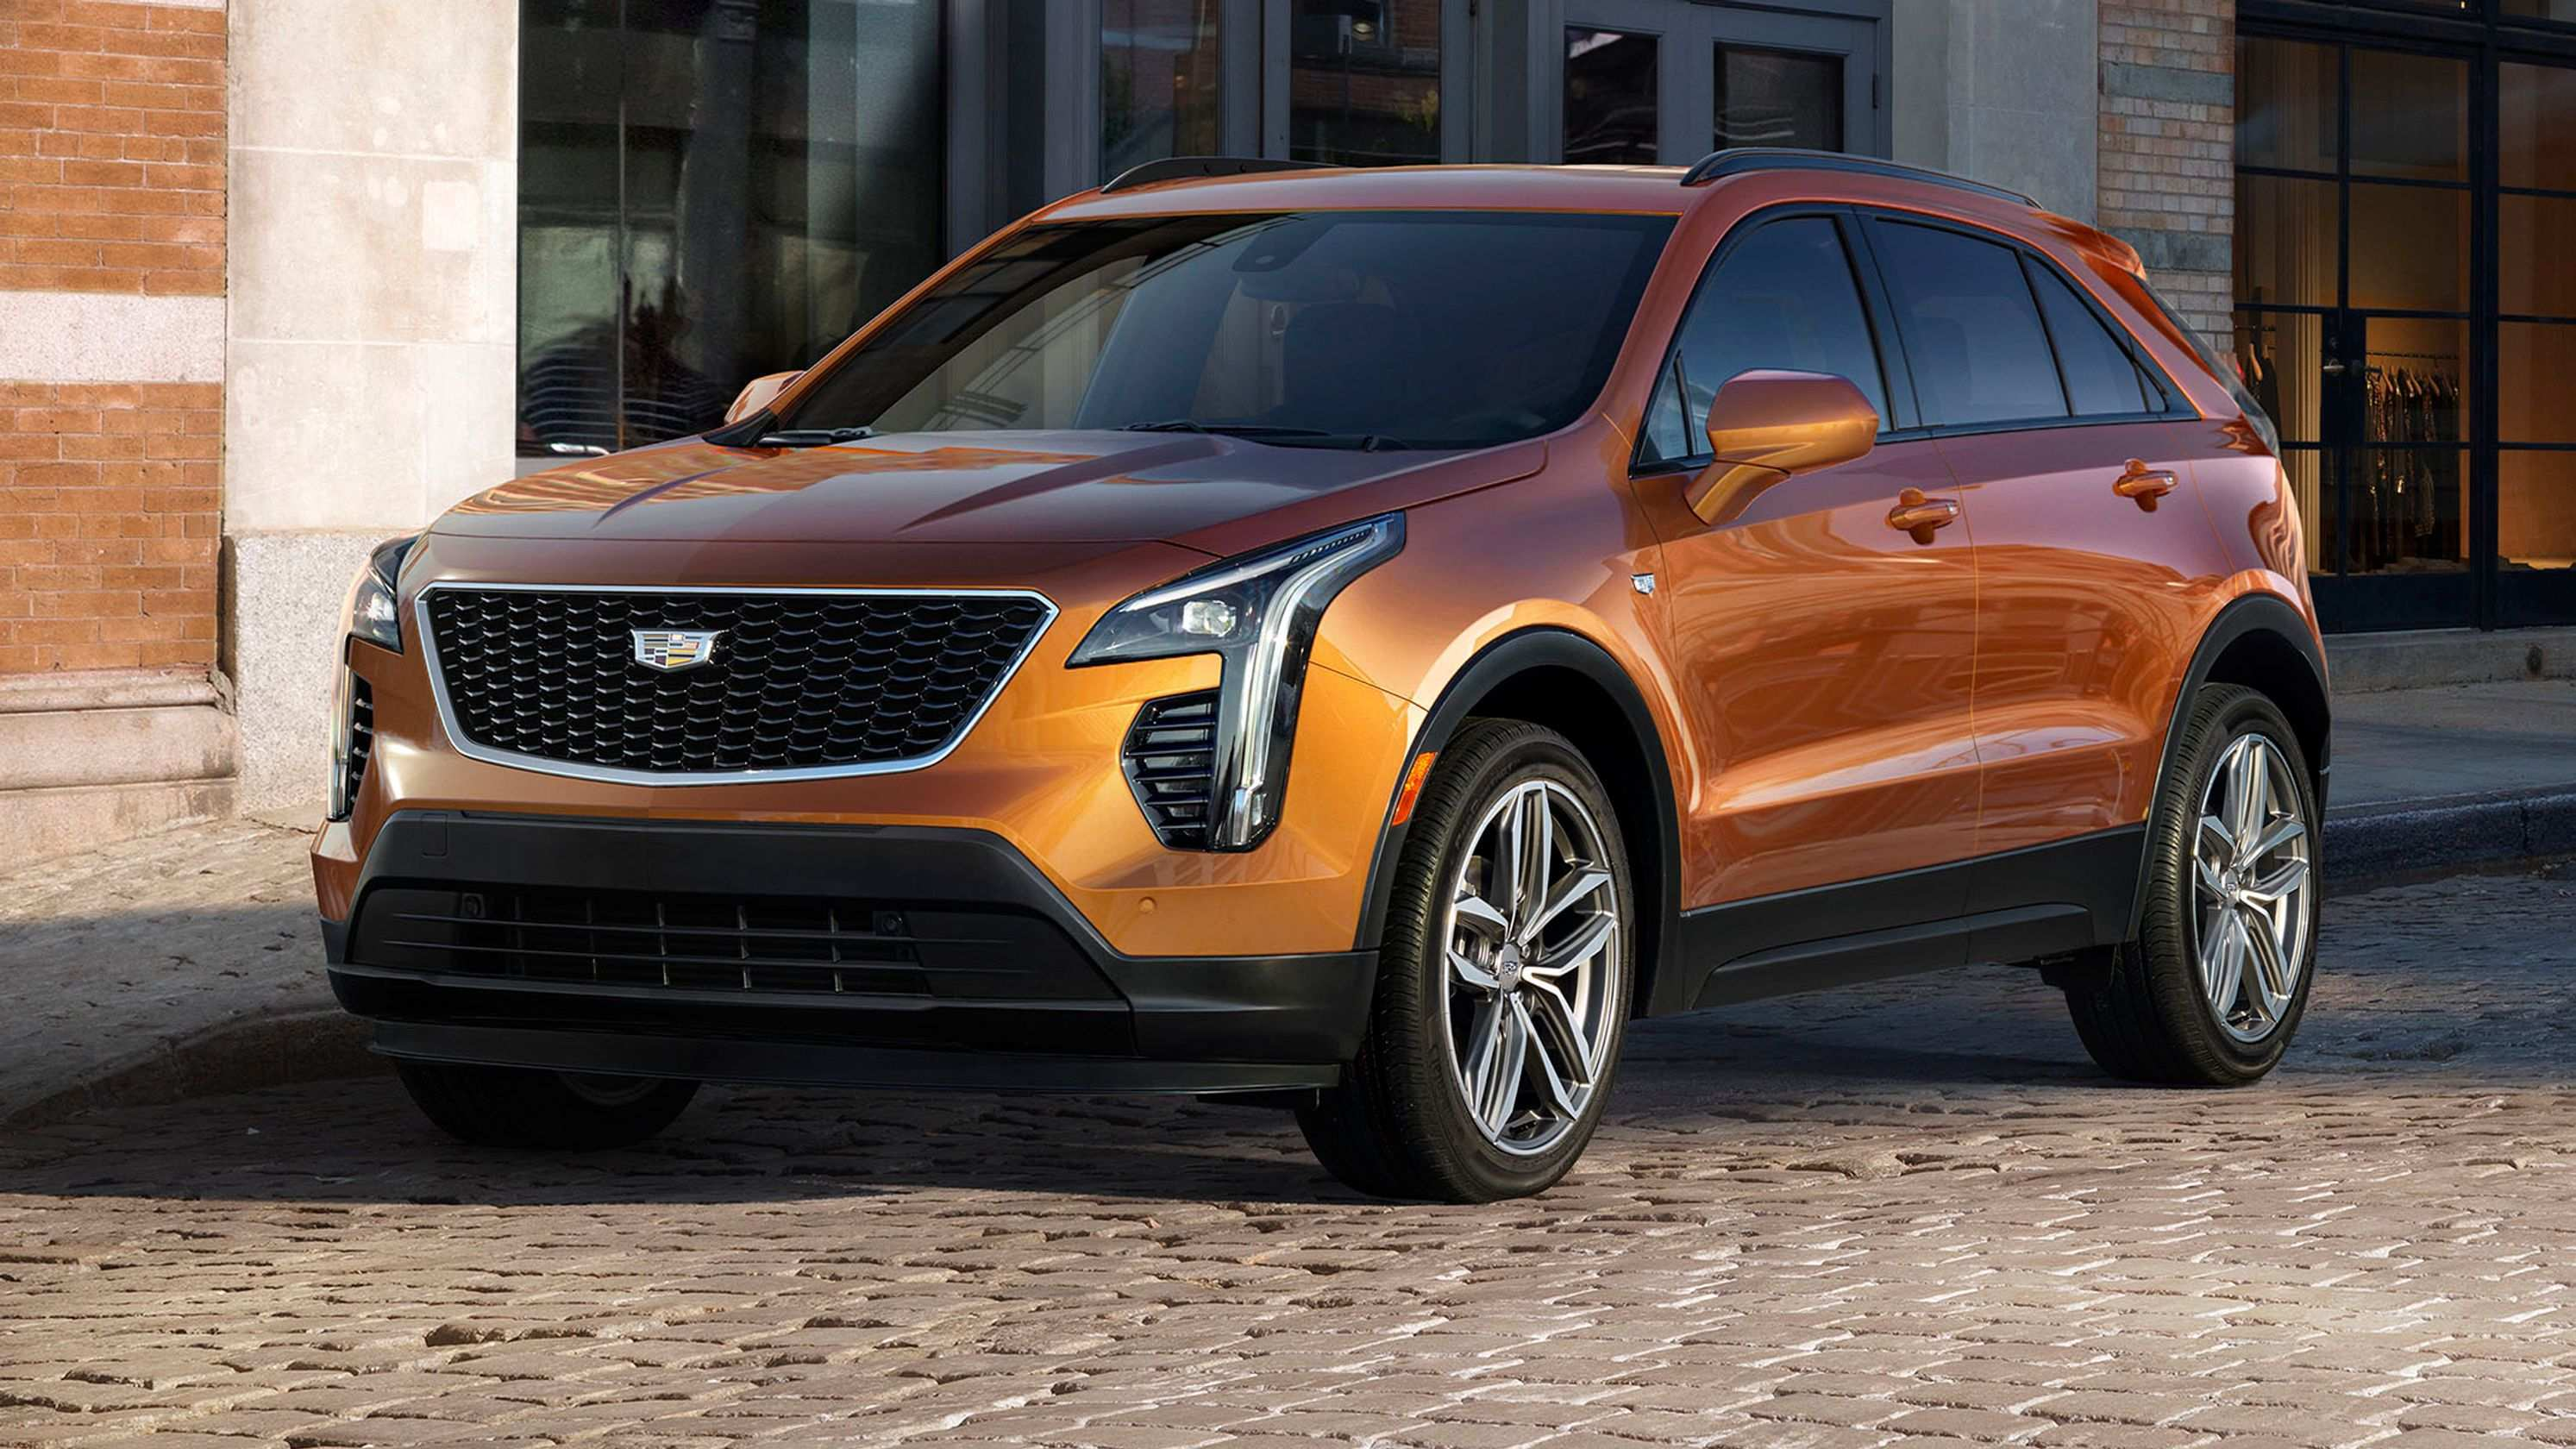 66 New New Cadillac For 2019 New Concept History for New Cadillac For 2019 New Concept